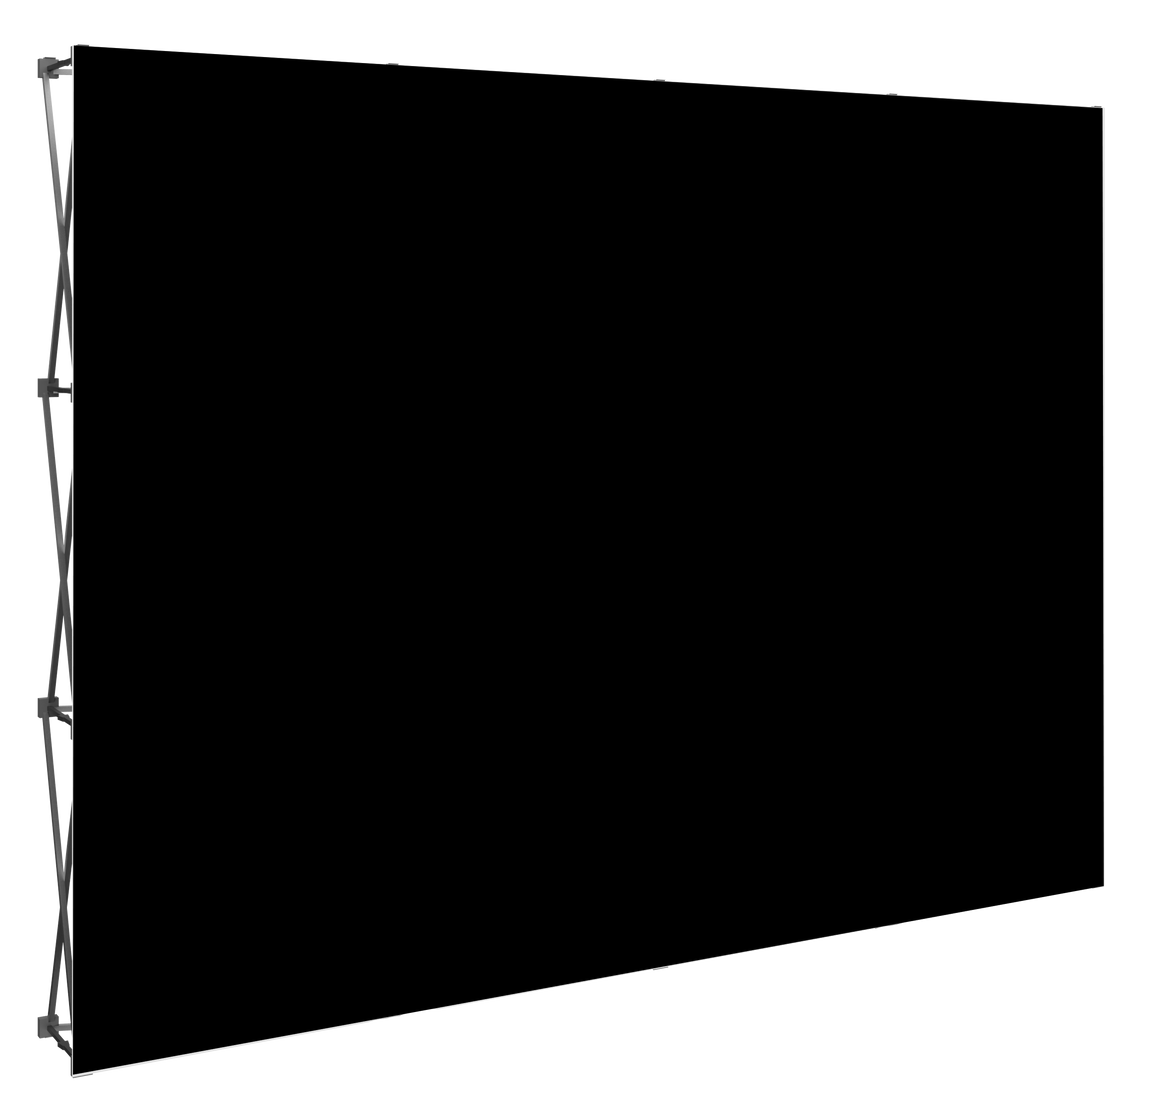 Premium Fabric Backdrop Kit - 10'x8'